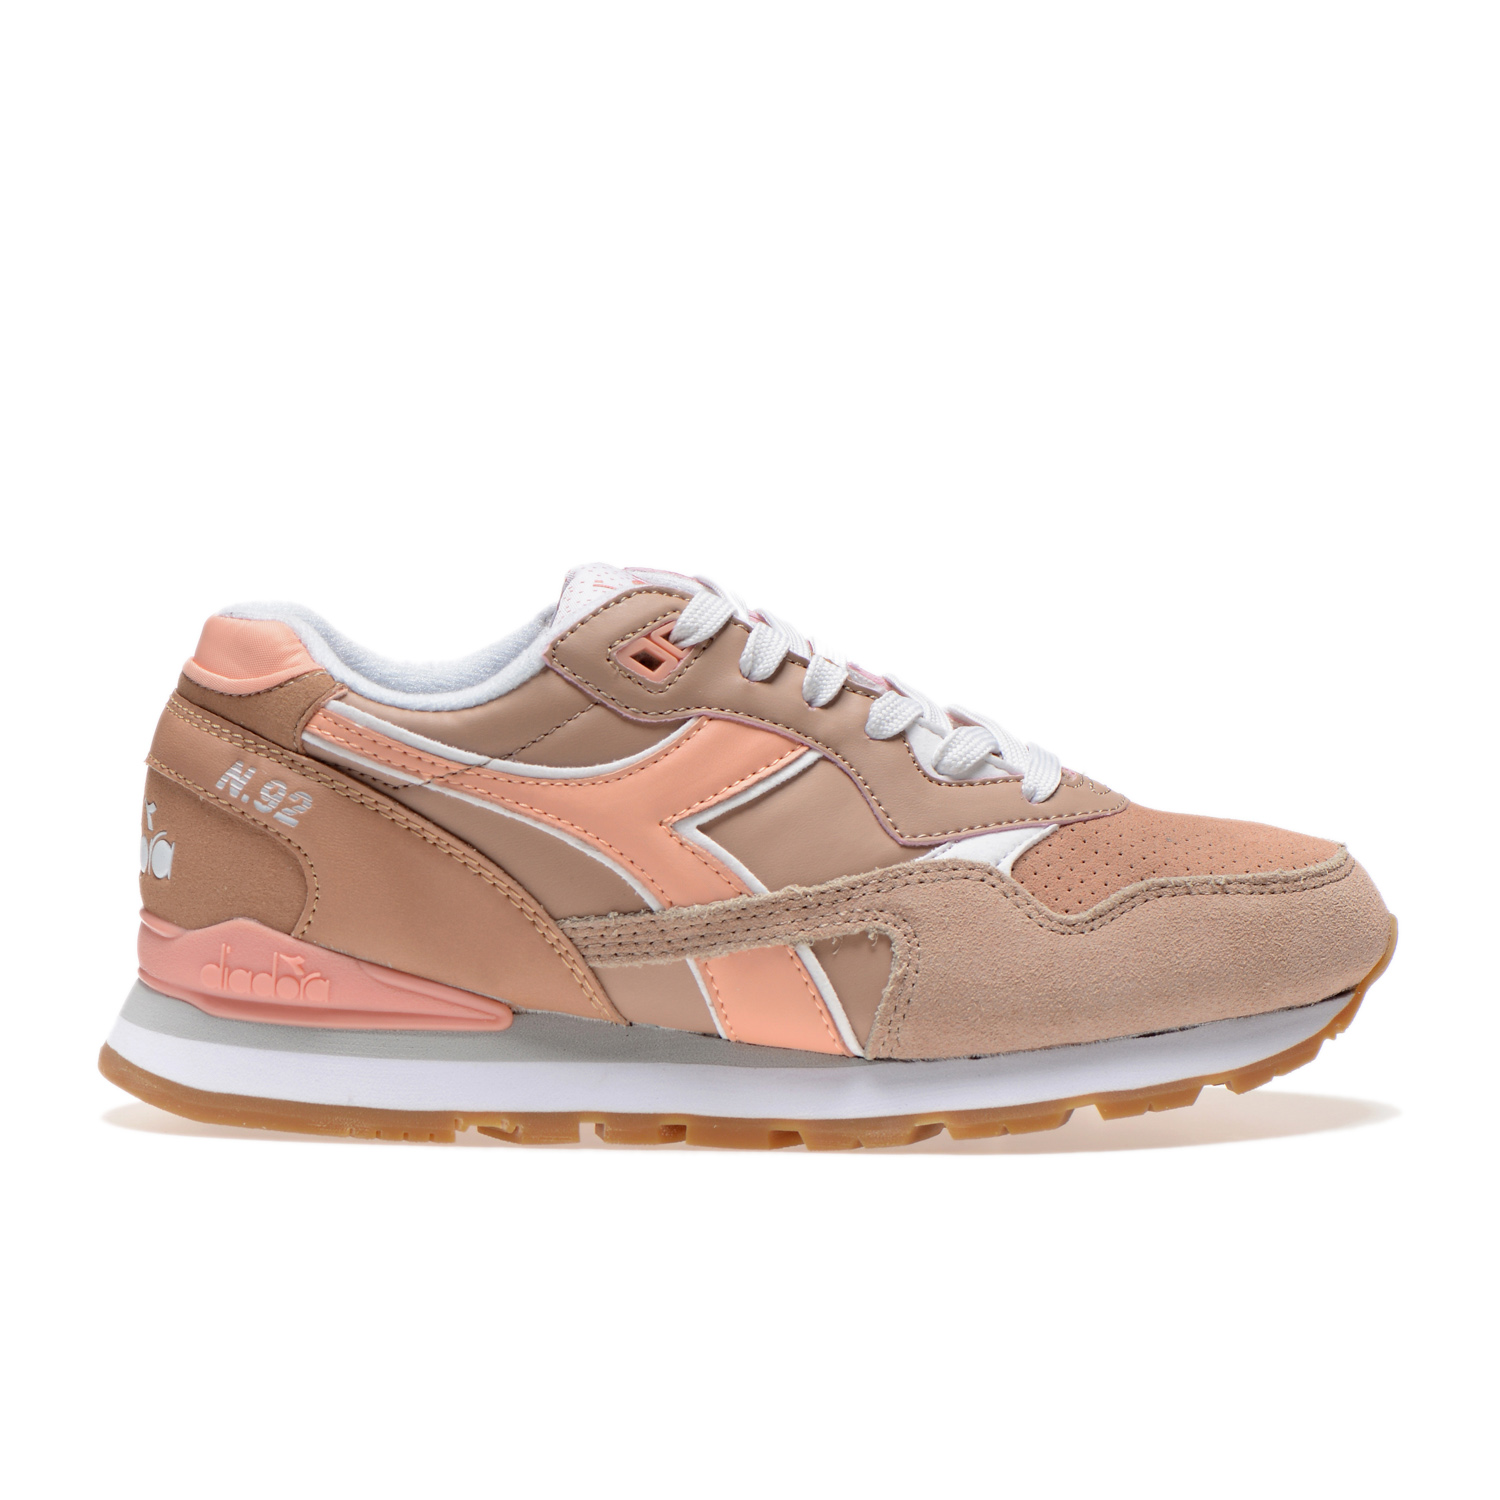 7cc37779 Details about Diadora - Sport shoes N - 92 WNT for man and woman